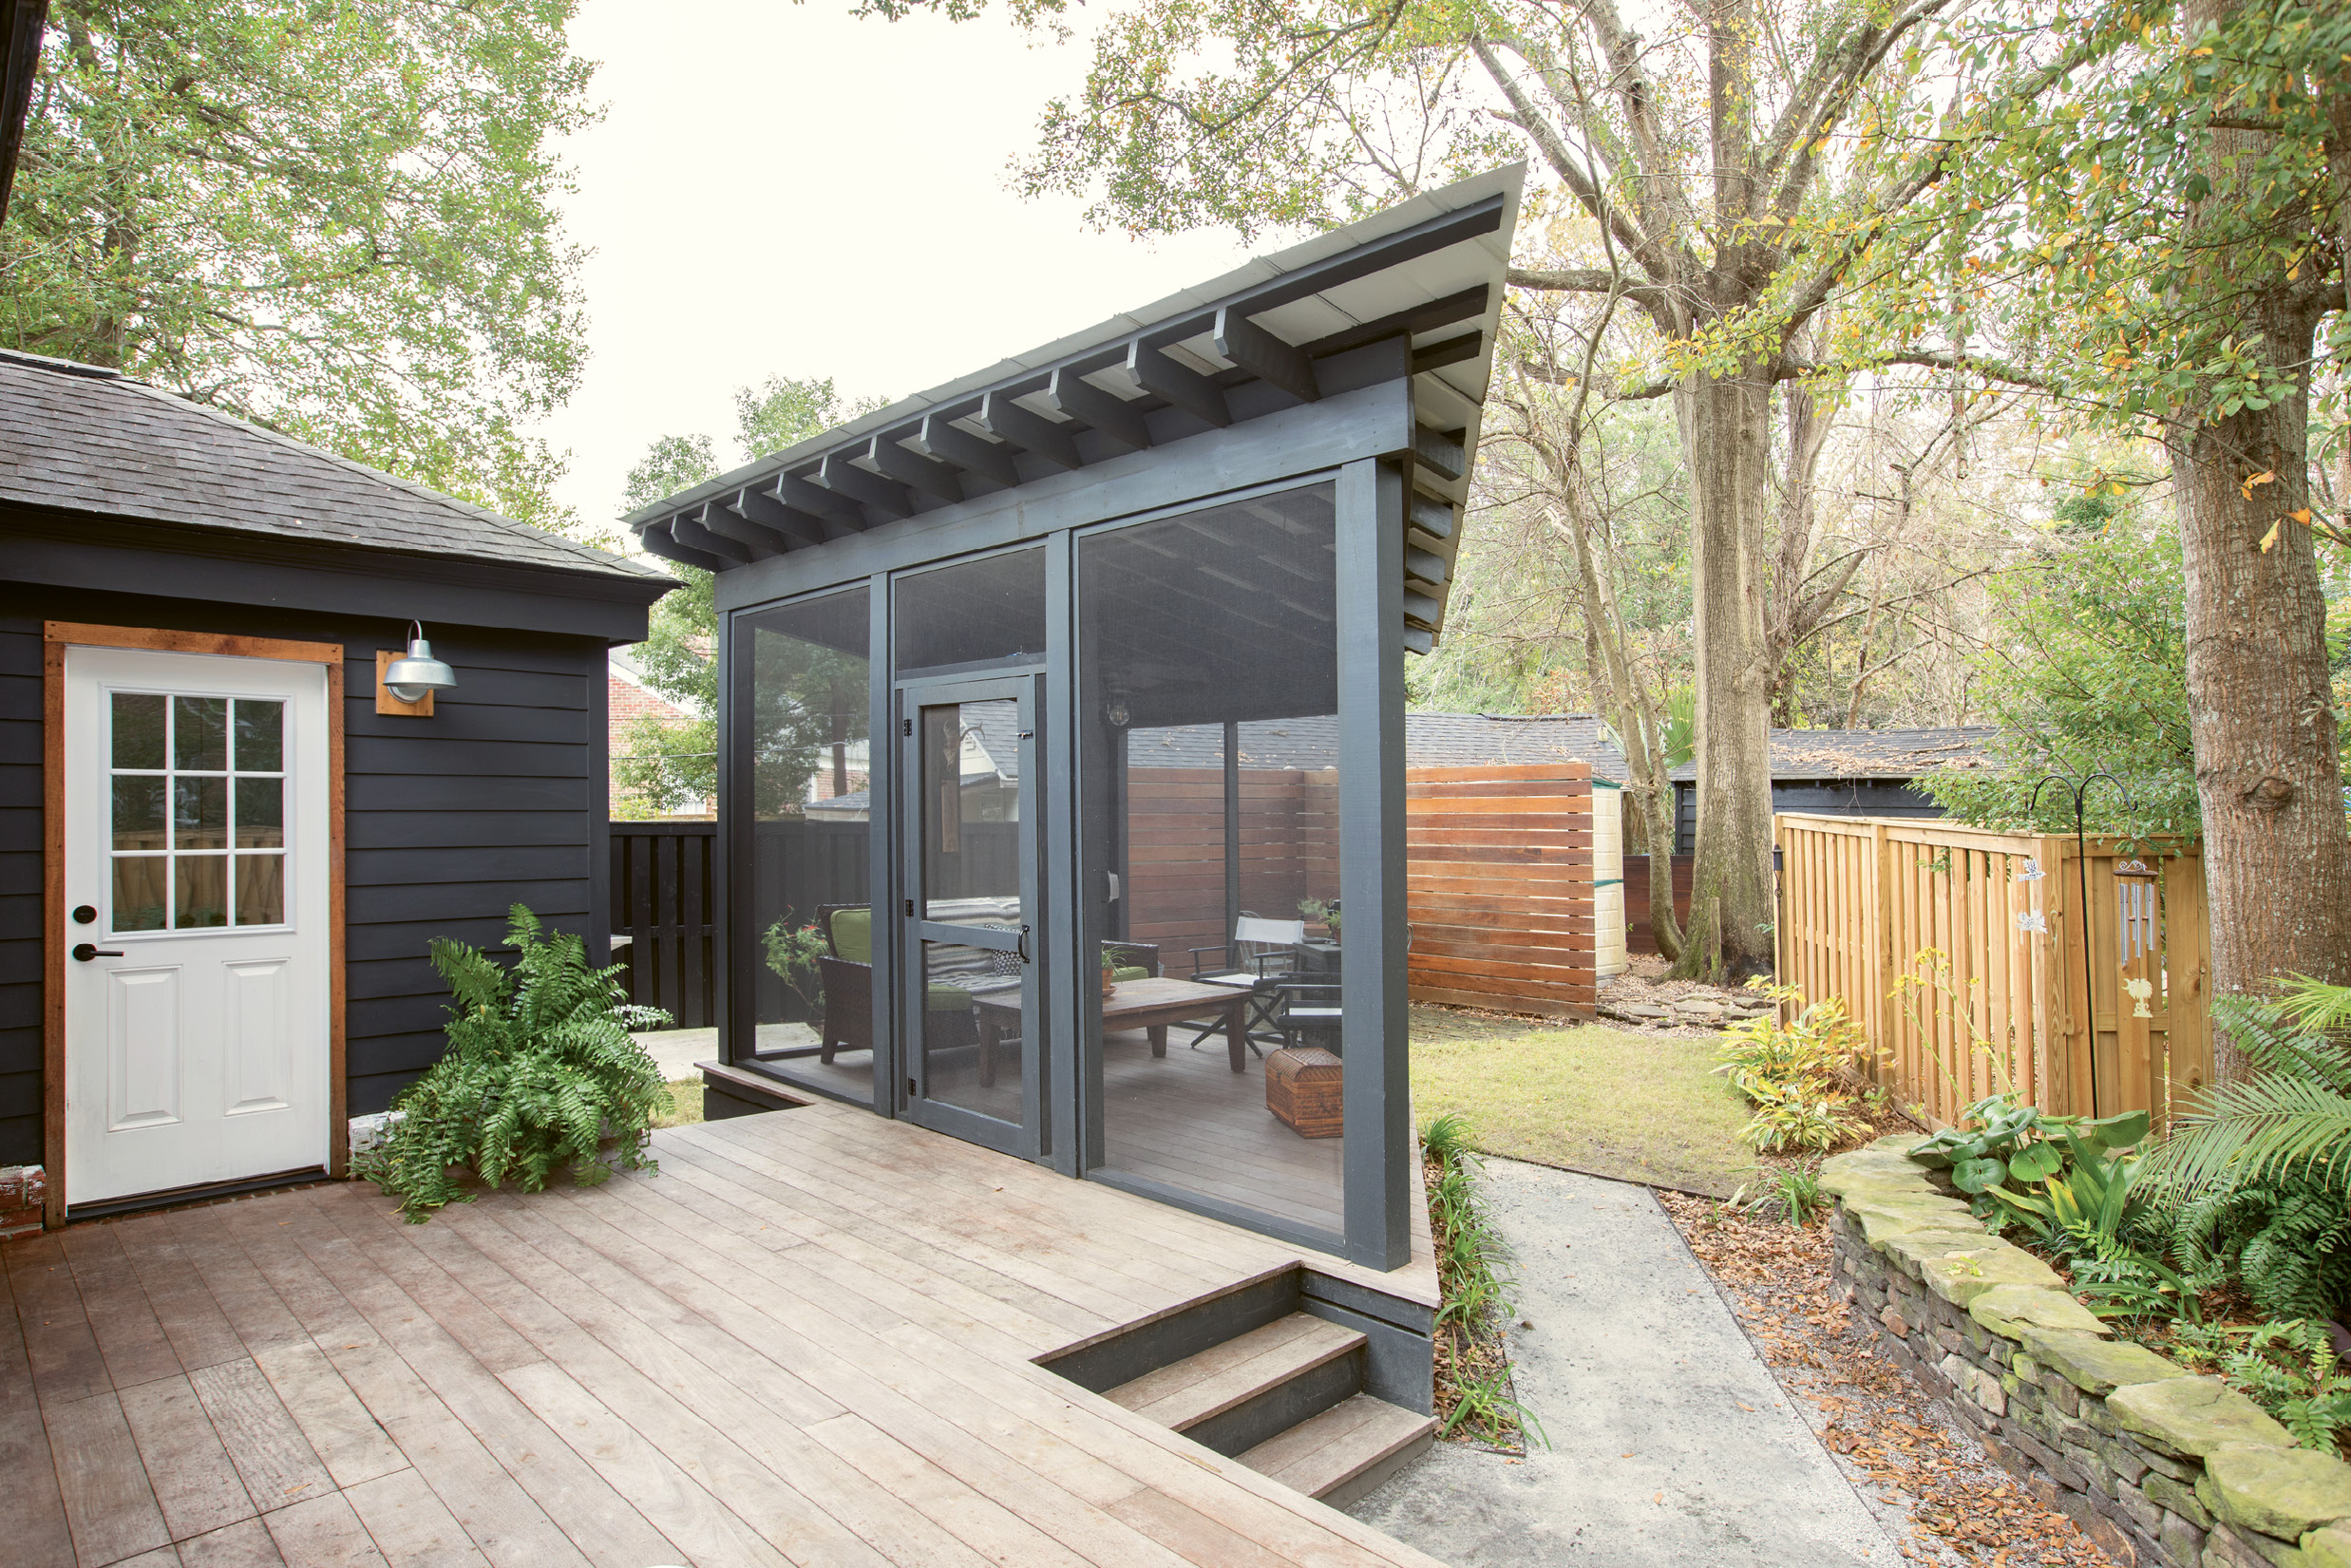 """PRIME PERCH: Just off the back deck, an angular screened-in porch makes the most of the triangular lot; its tin roof adds an industrial touch that feels perfectly in step with the rest of the modern-minded renovation. """"I'm so glad we made the screened-in porch happen: I love being outside, but the no-seeums drive me nuts,"""" Jacques says. """"There's nothing better than sitting on the couch outside, listening to the wind blow, birds sing, and children playing in the neighborhood."""""""